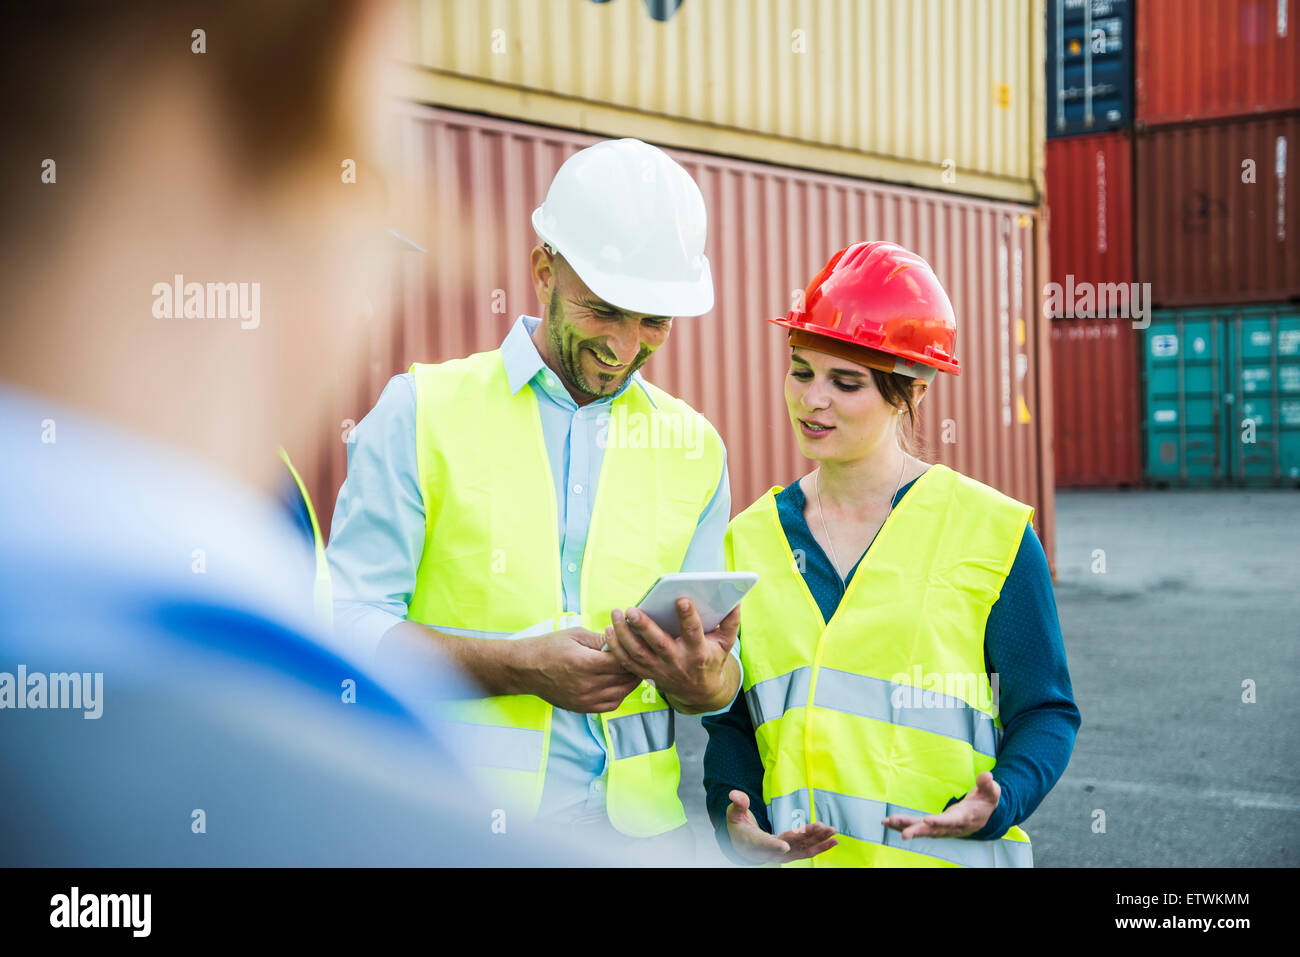 Woman and smiling man with safety helmets and digital tablet at container port - Stock Image